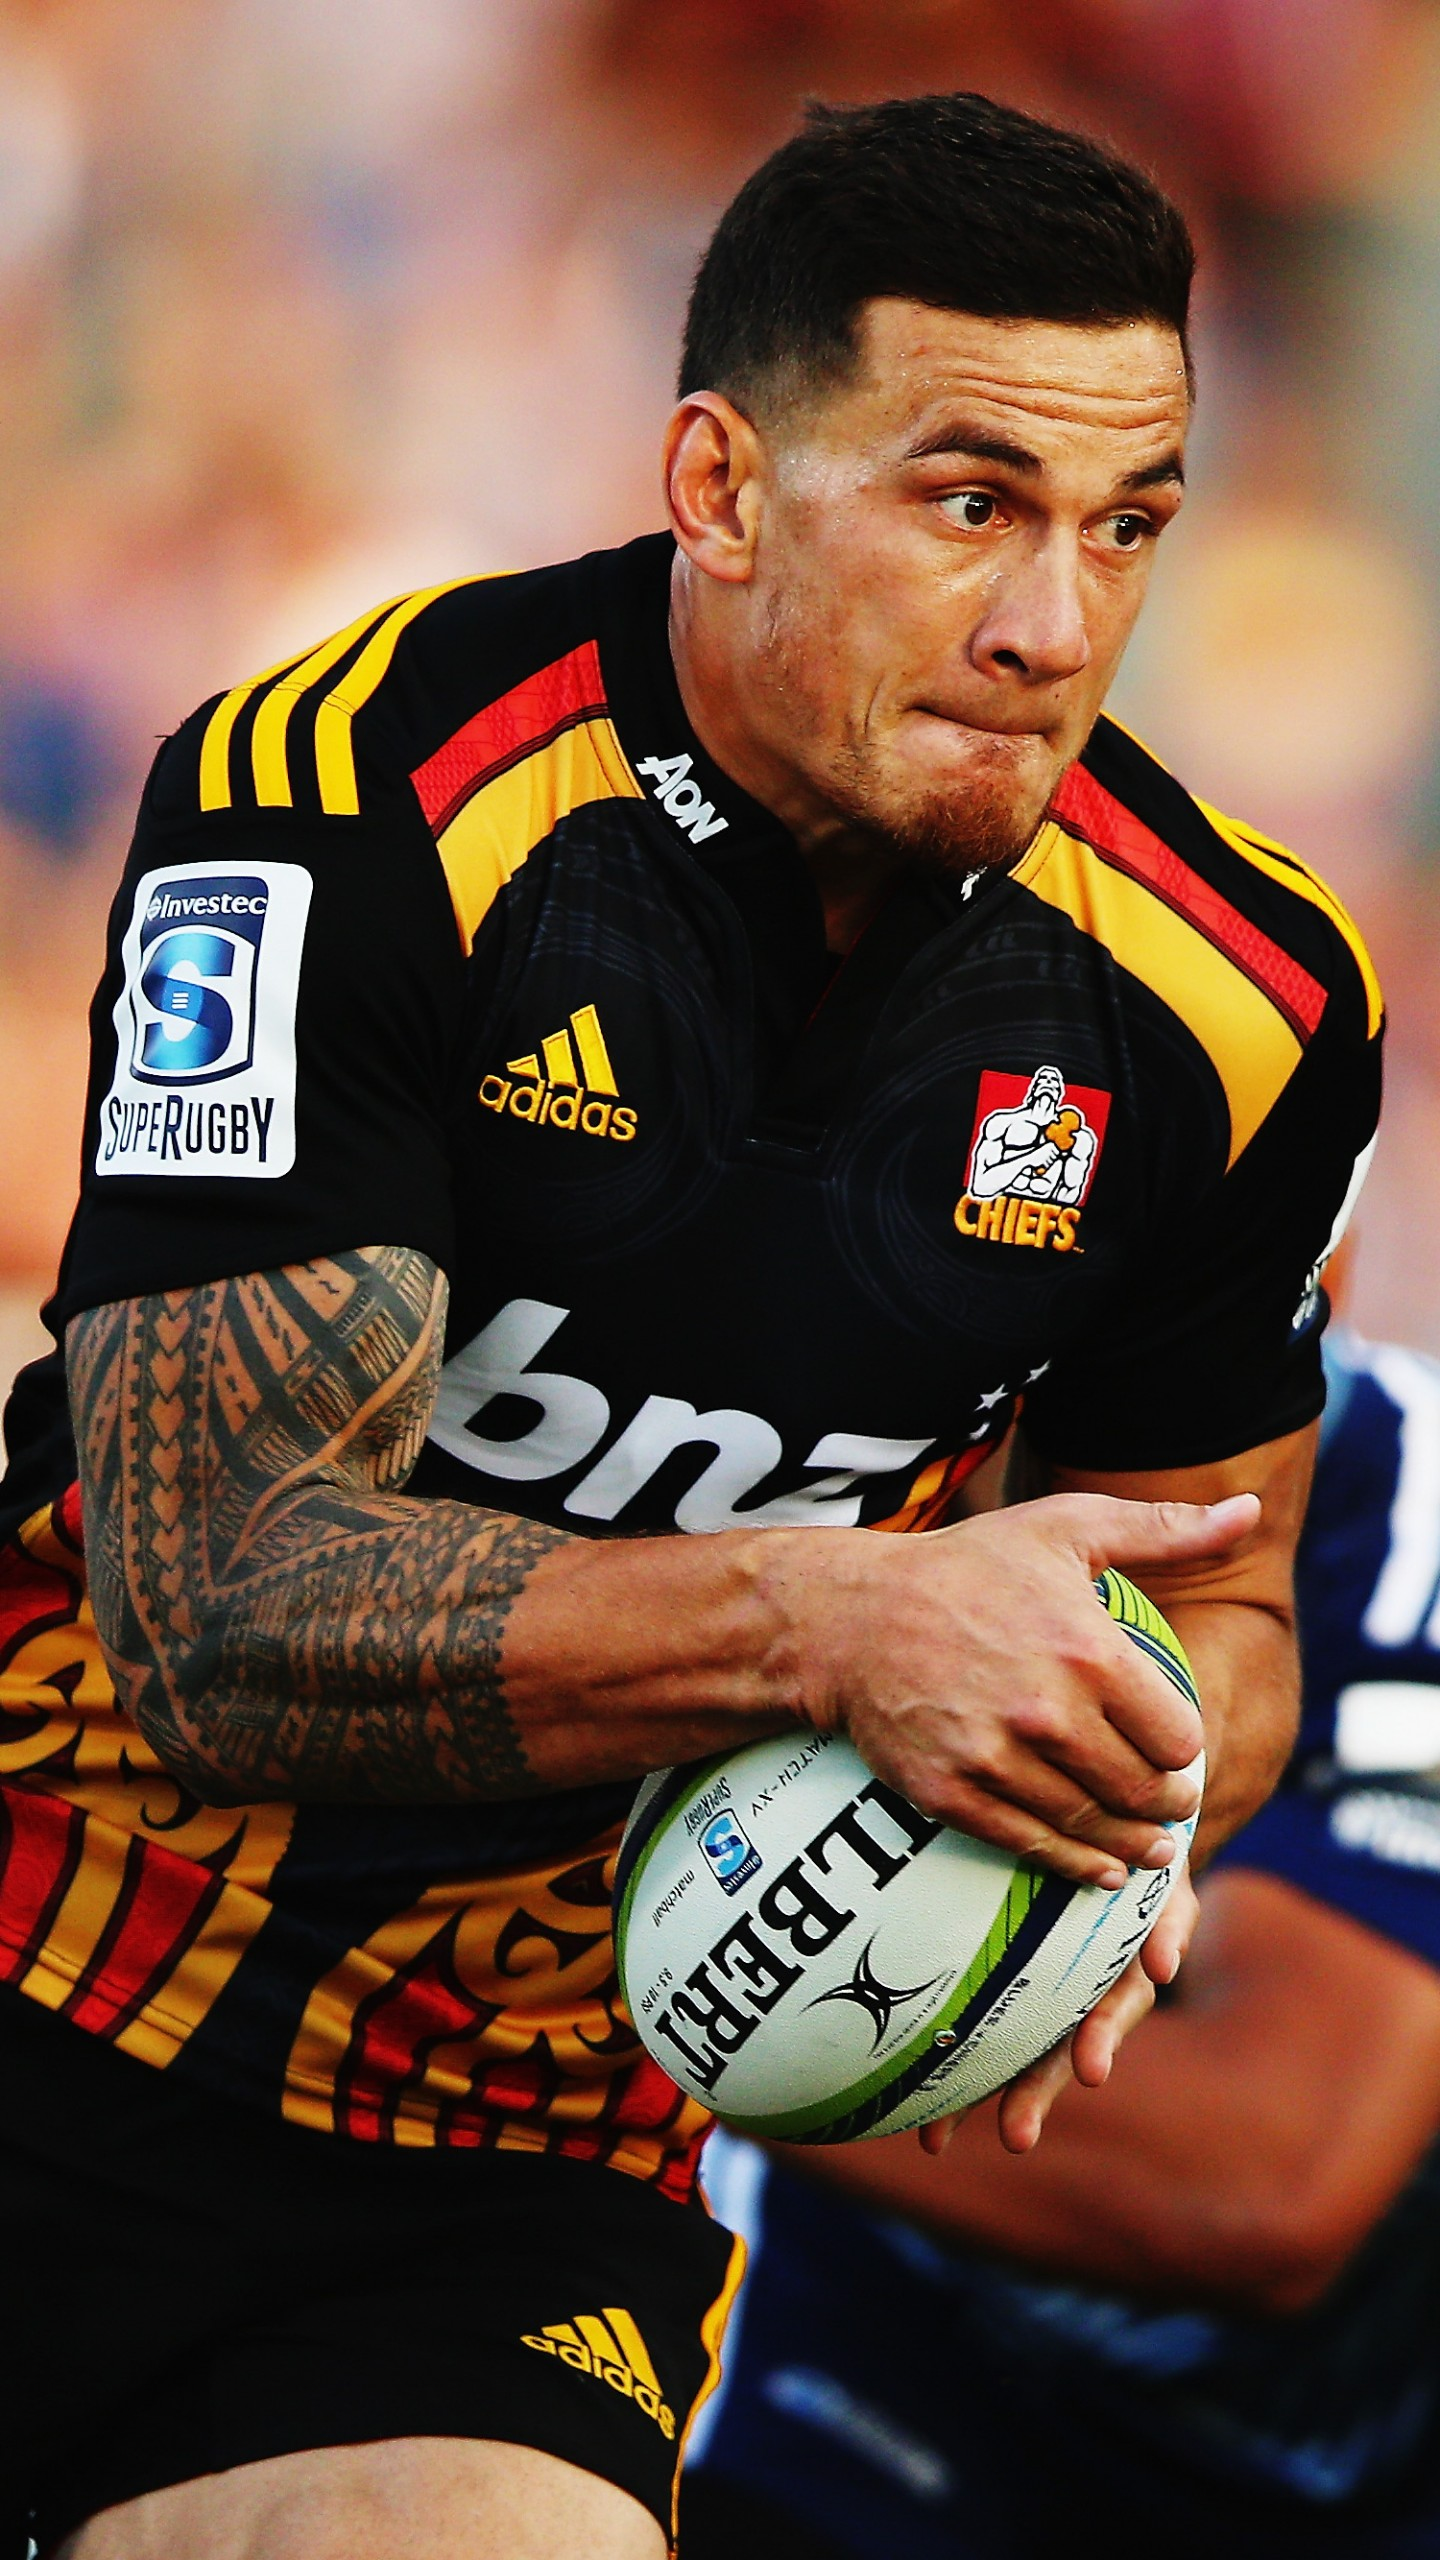 Wallpaper Rugby Sonny Bill Williams Best Rugby Players New Zealand Sport 5010